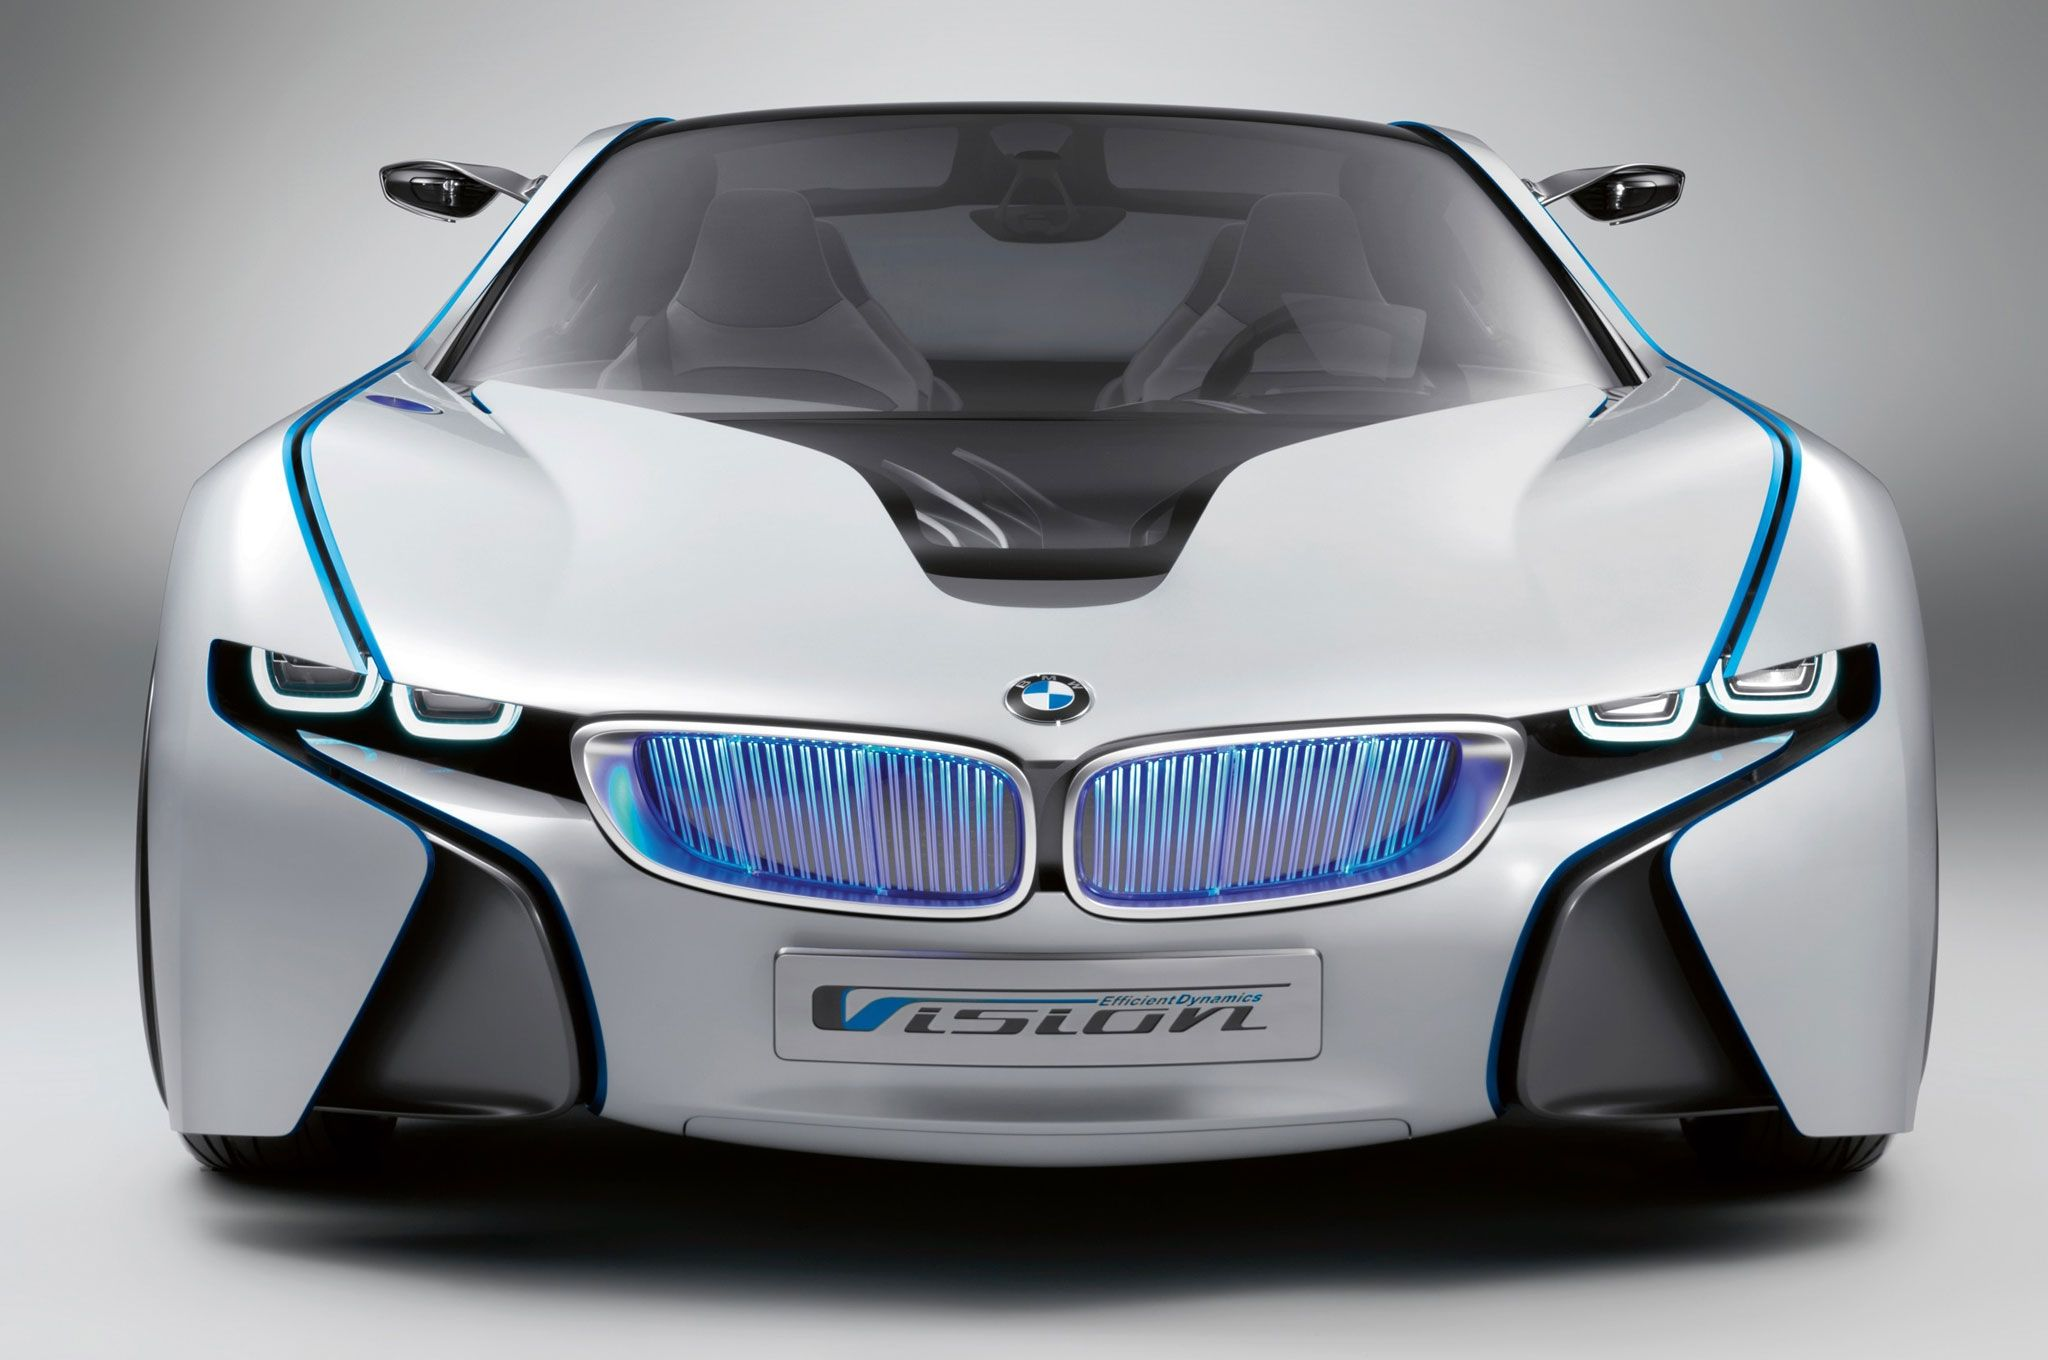 Fabulous 2014 Bmw I8 Front View Photo Wallpaper Cars Pinterest